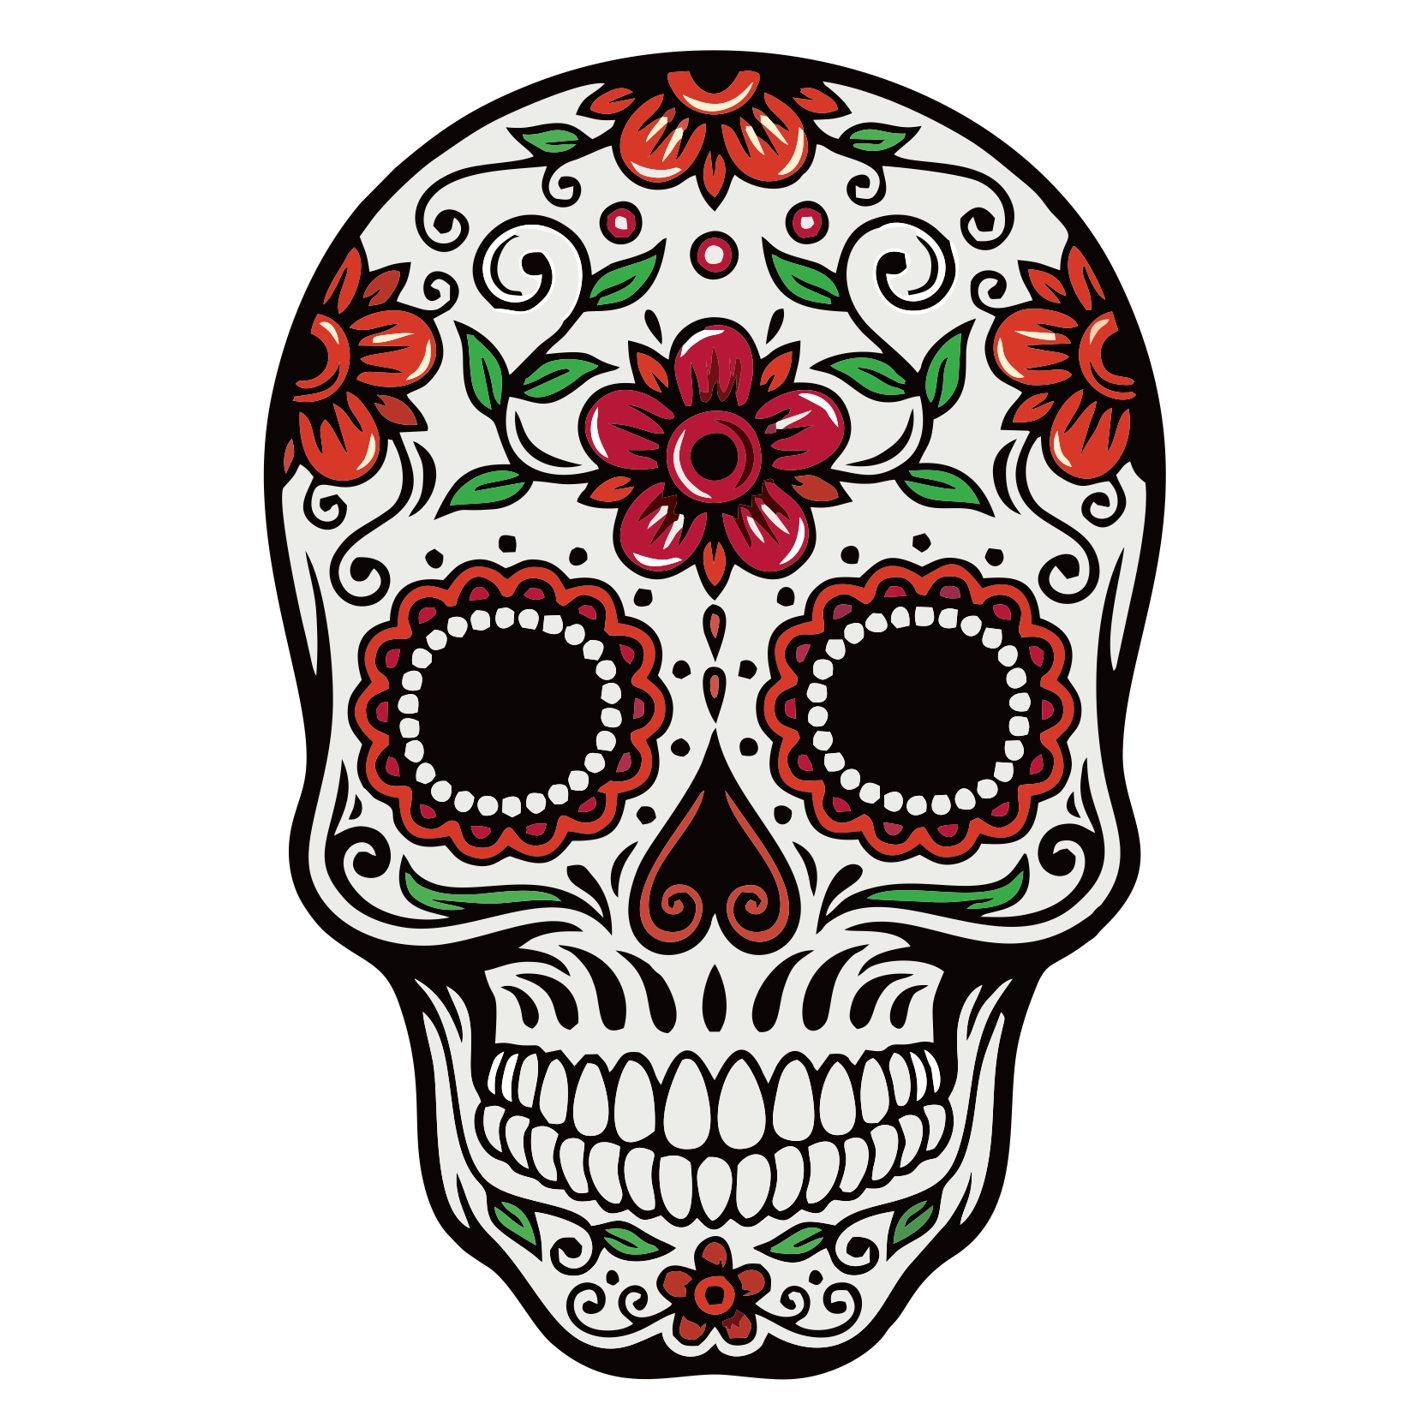 Samolepka Day of the dead rose sticker